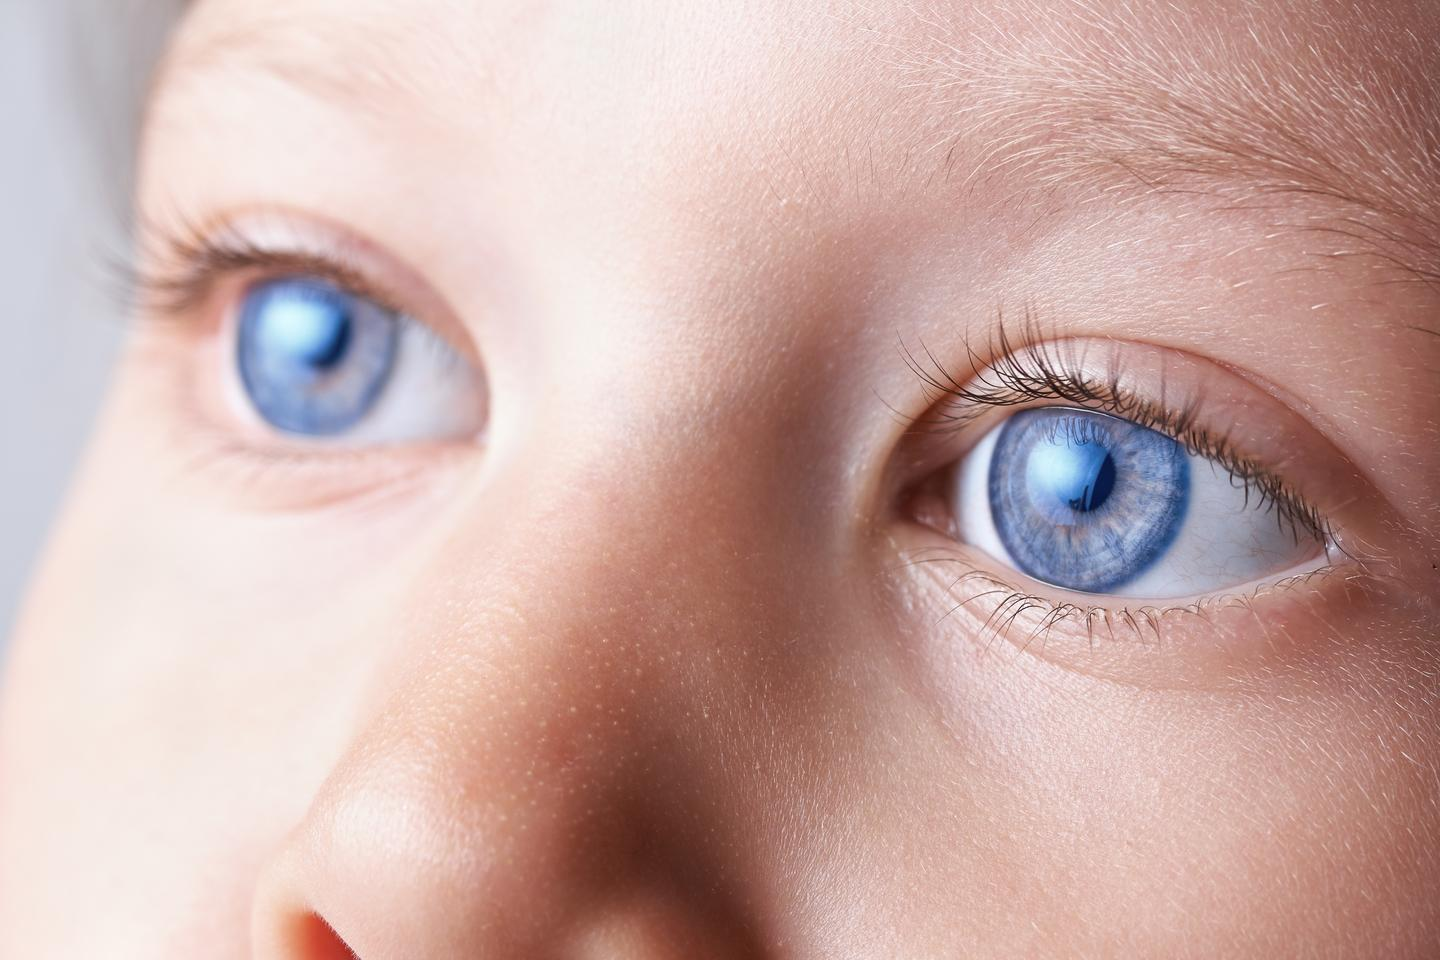 An inability to suppress eye movement could be a reliable indicator of ADHD (Photo: Shutterstock)